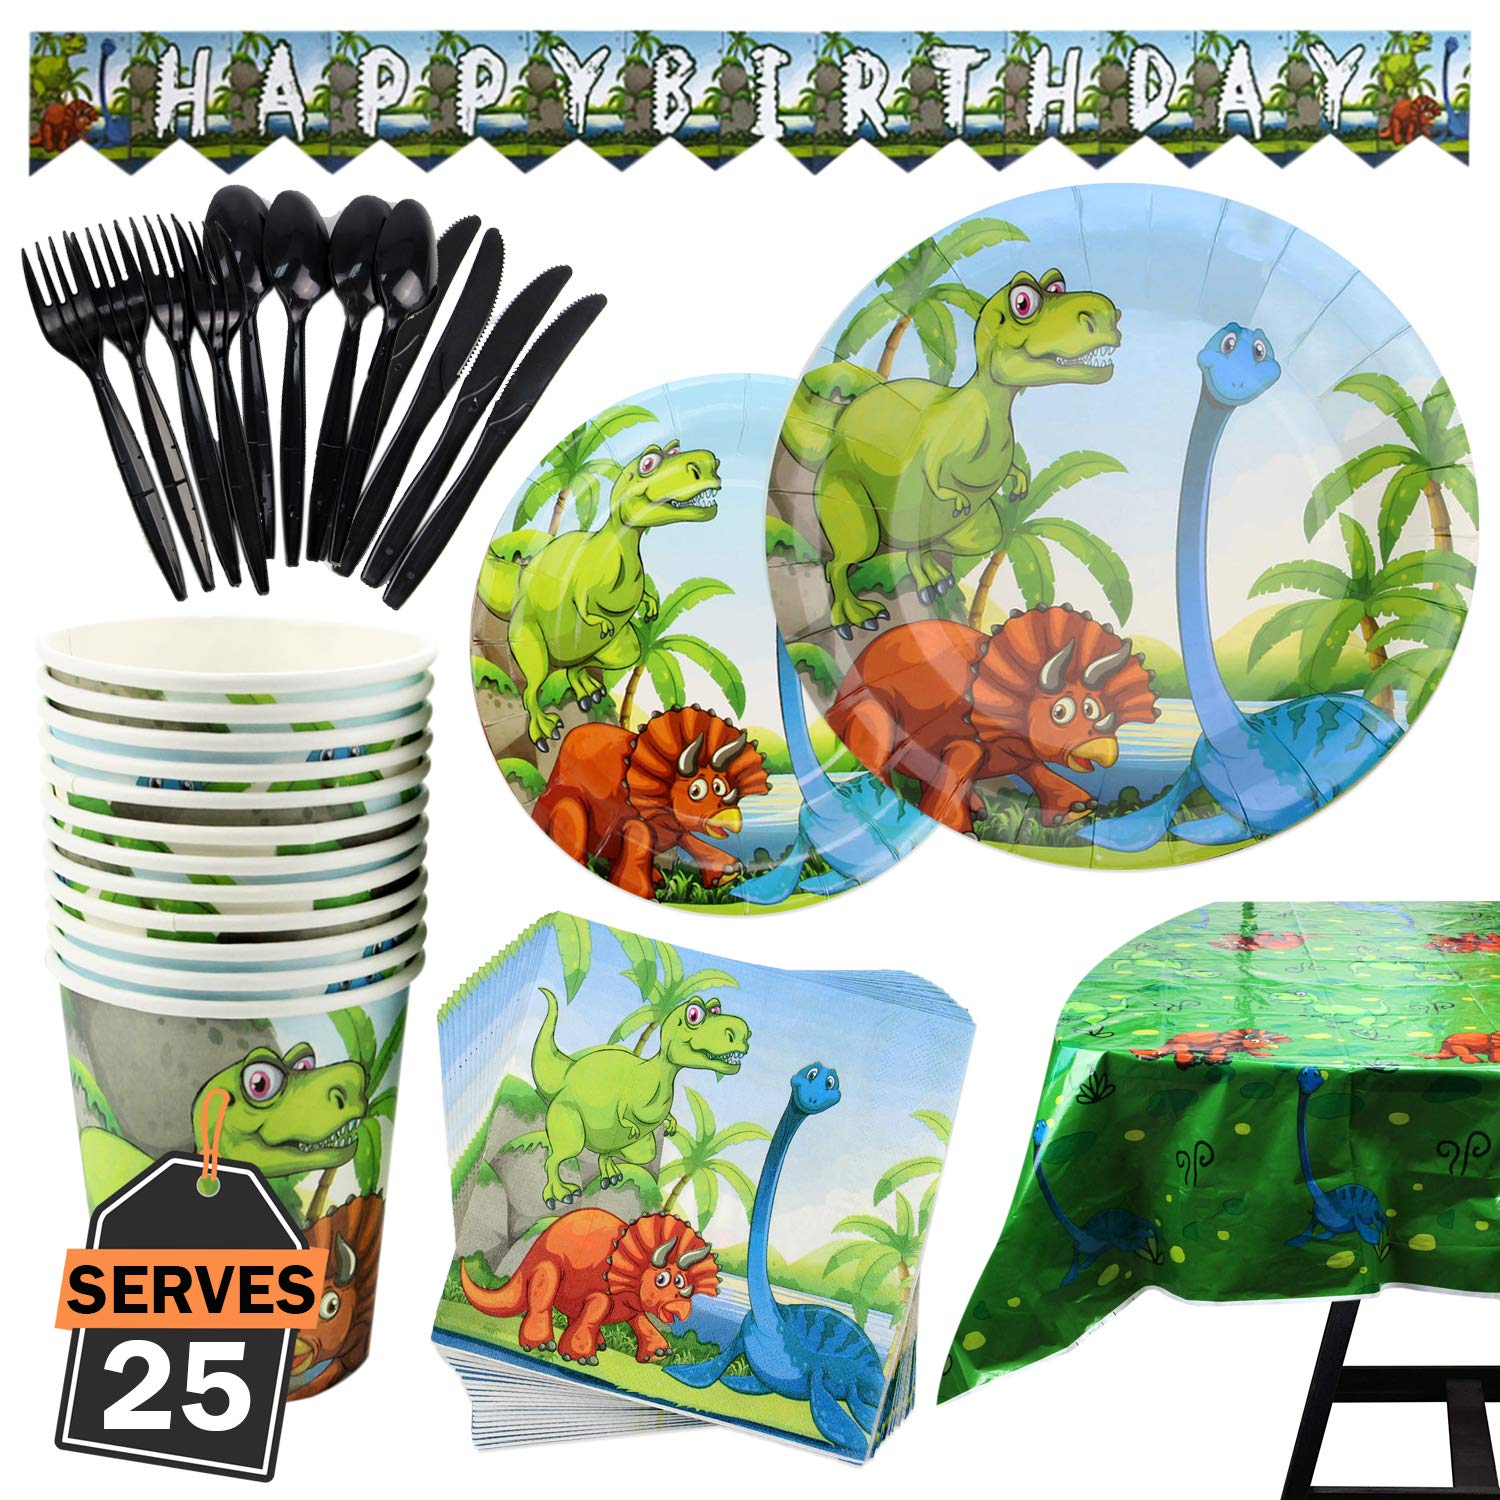 177 Piece Dinosaur Party Supplies Set Including Plates, Cups, Napkins, Spoons, Forks, Knives, Tablecloth and Banner, Serves 25 by Scale Rank